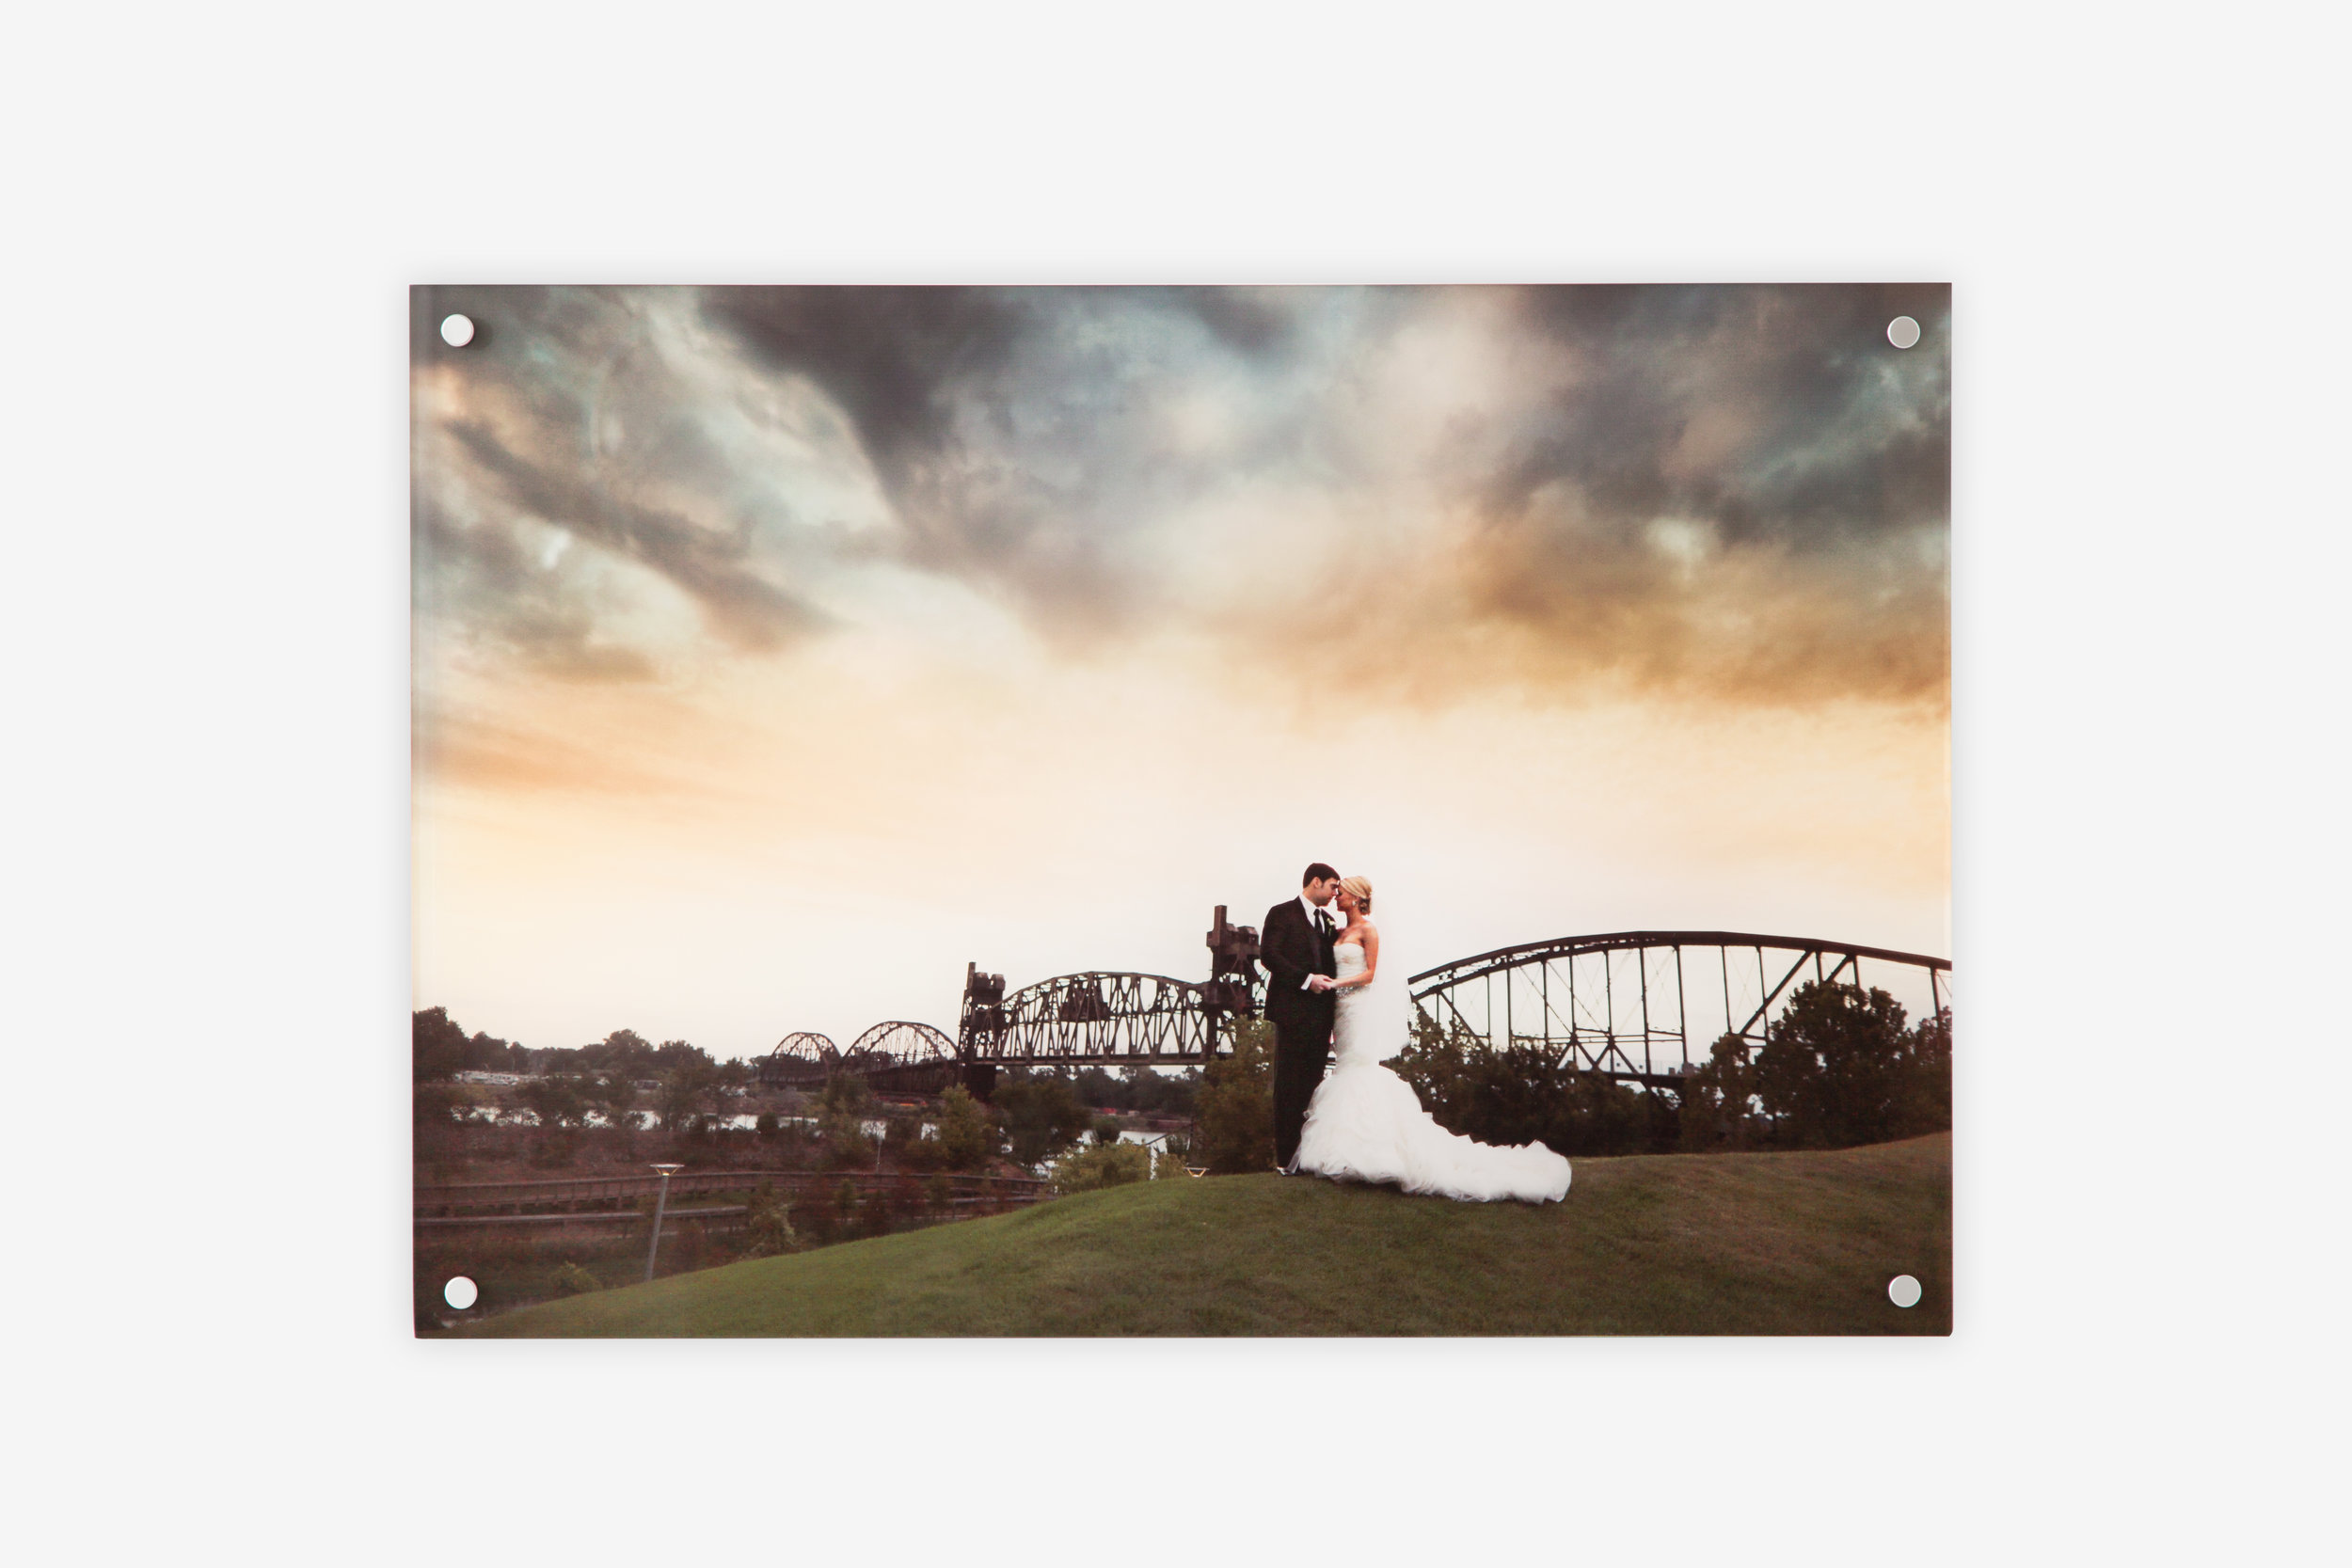 Prints - We have you cover for what ever size you needPrinted on the world's finest photographic paper. Prints are available with an array of beautiful surface modifications and mounting options.